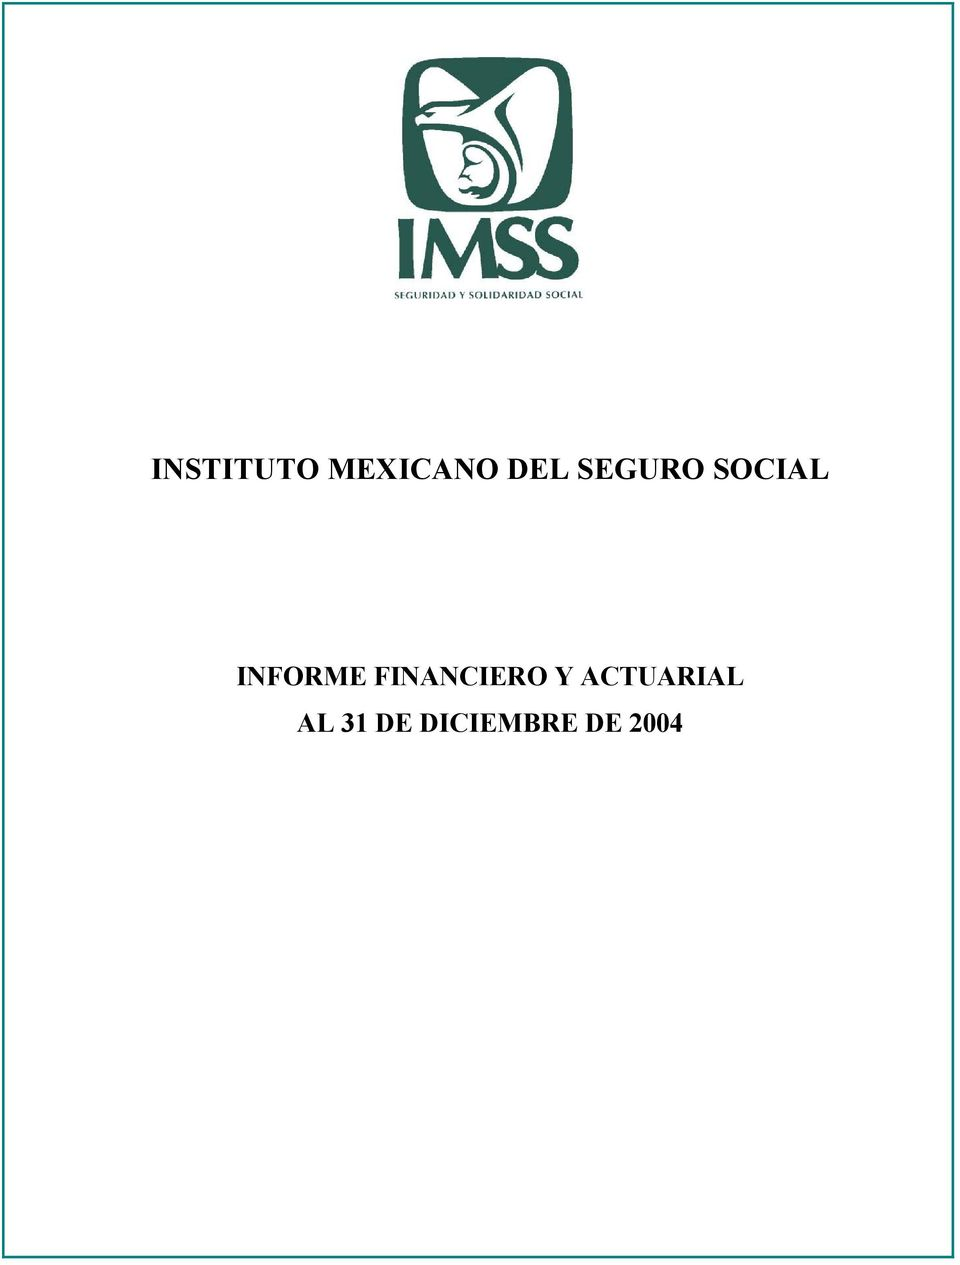 FINANCIERO Y ACTUARIAL